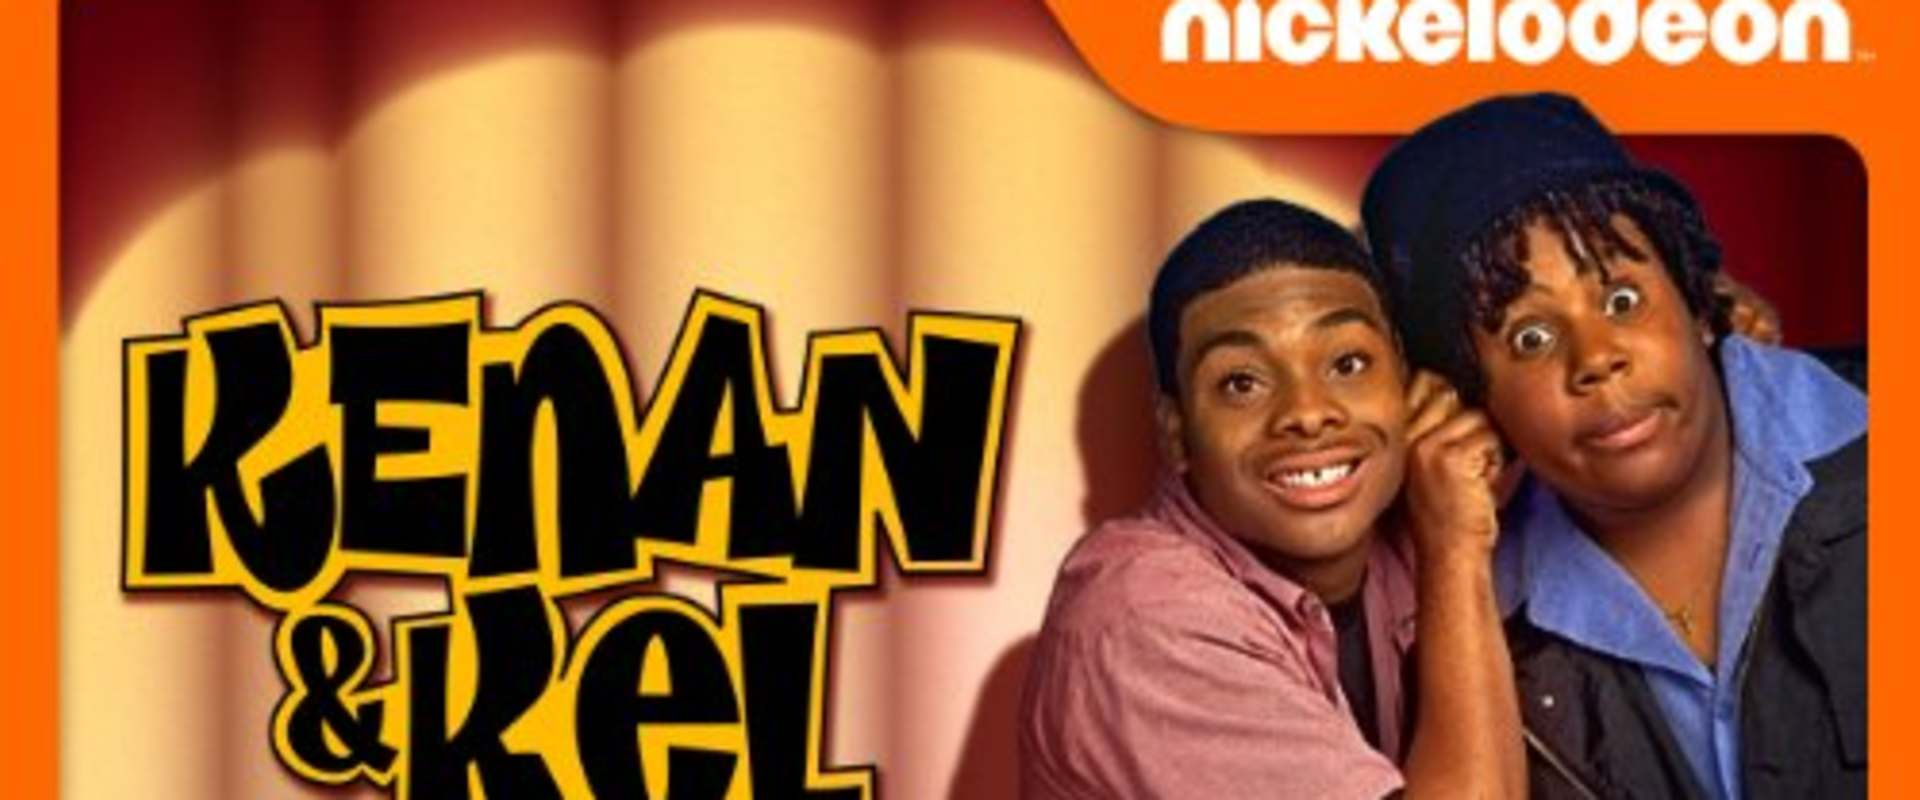 Kenan & Kel: Two Heads Are Better Than None background 1